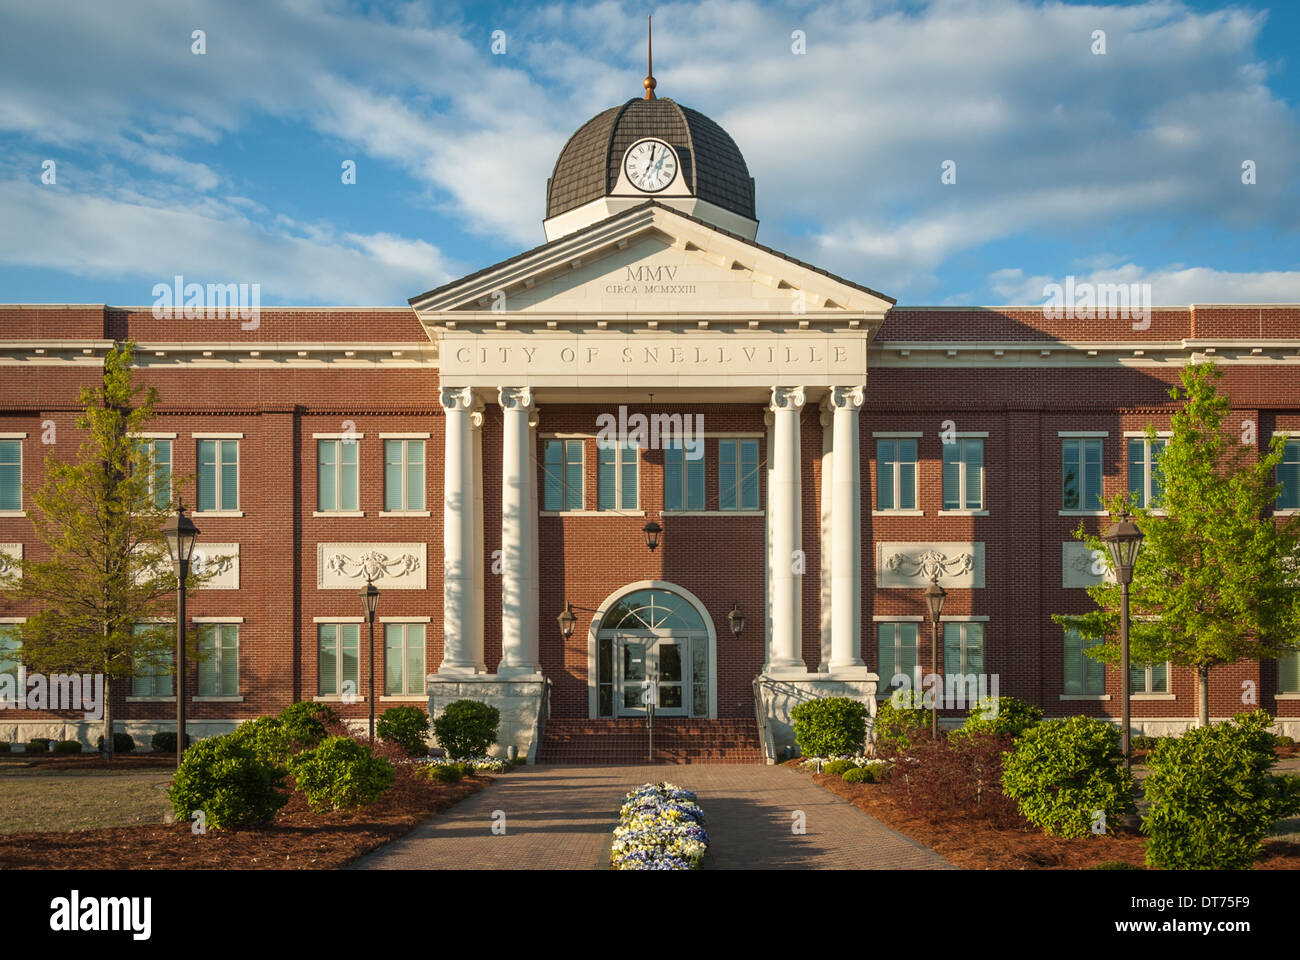 Snellville City Hall at located in Snellville, Georgia